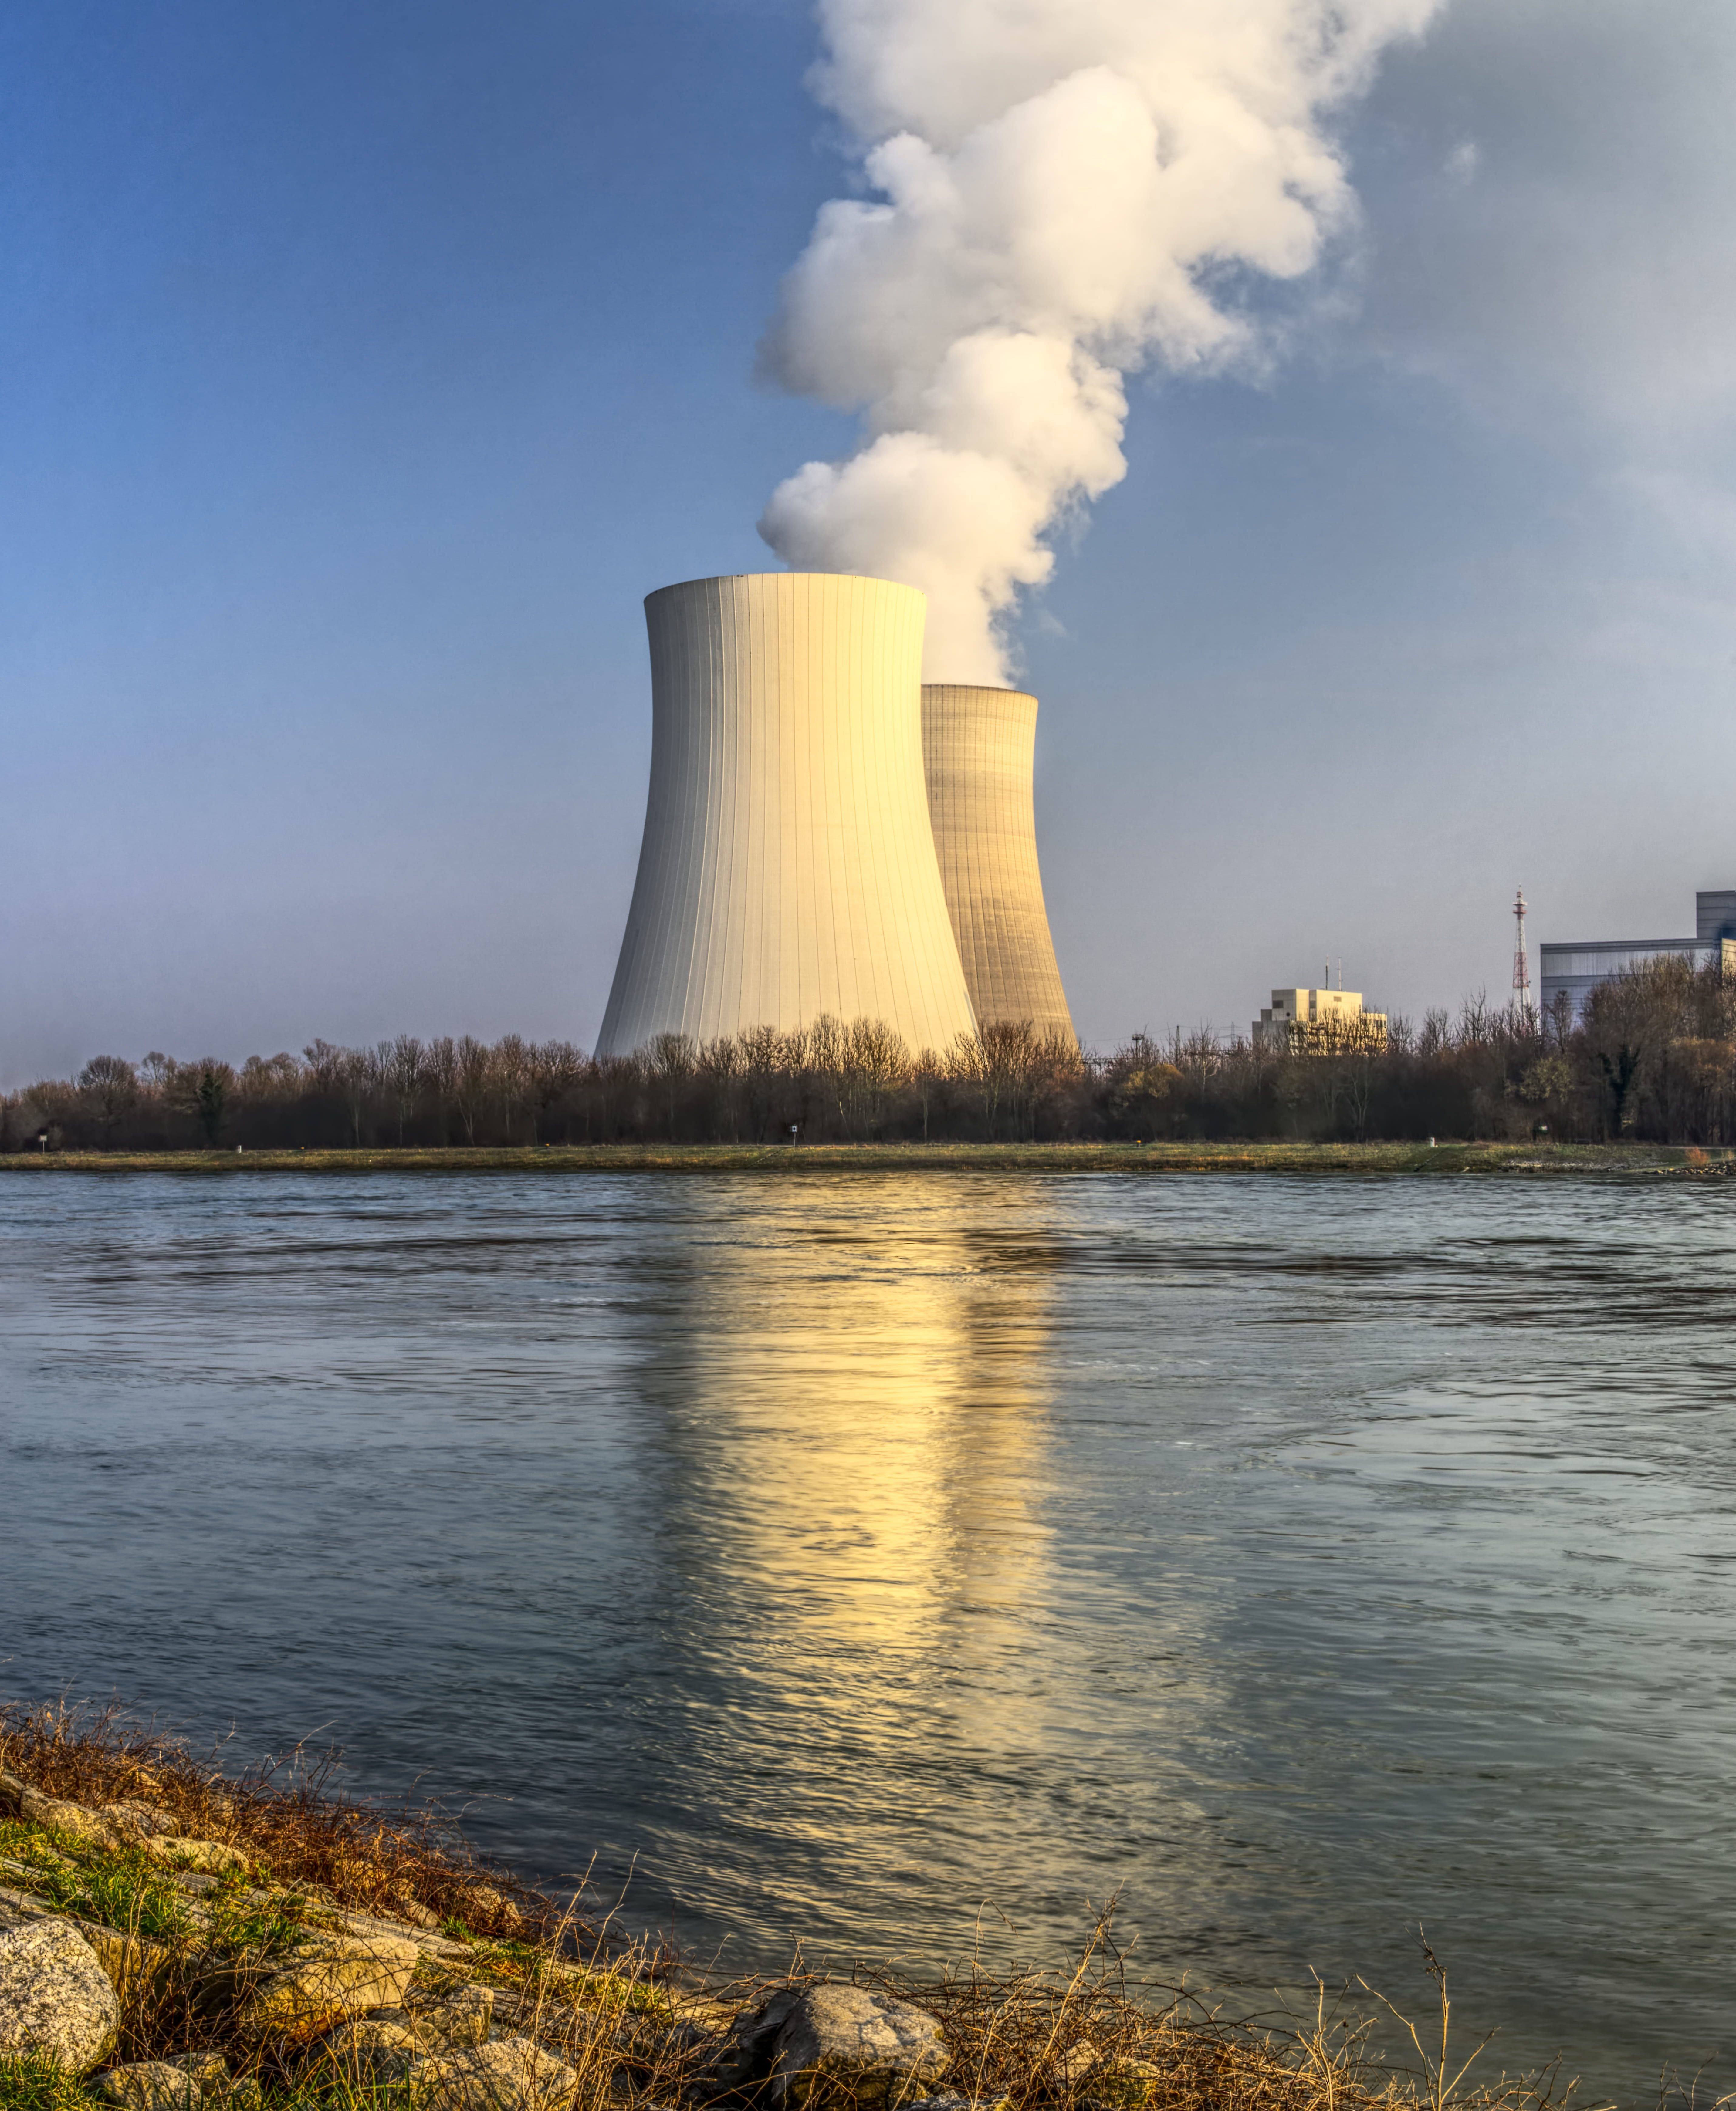 nuclear power plant cooling tower power plant nuclear reactors nuclear power atomic energy high voltage nuclear reactor power supply nuclear fission cooling towers nuclea...